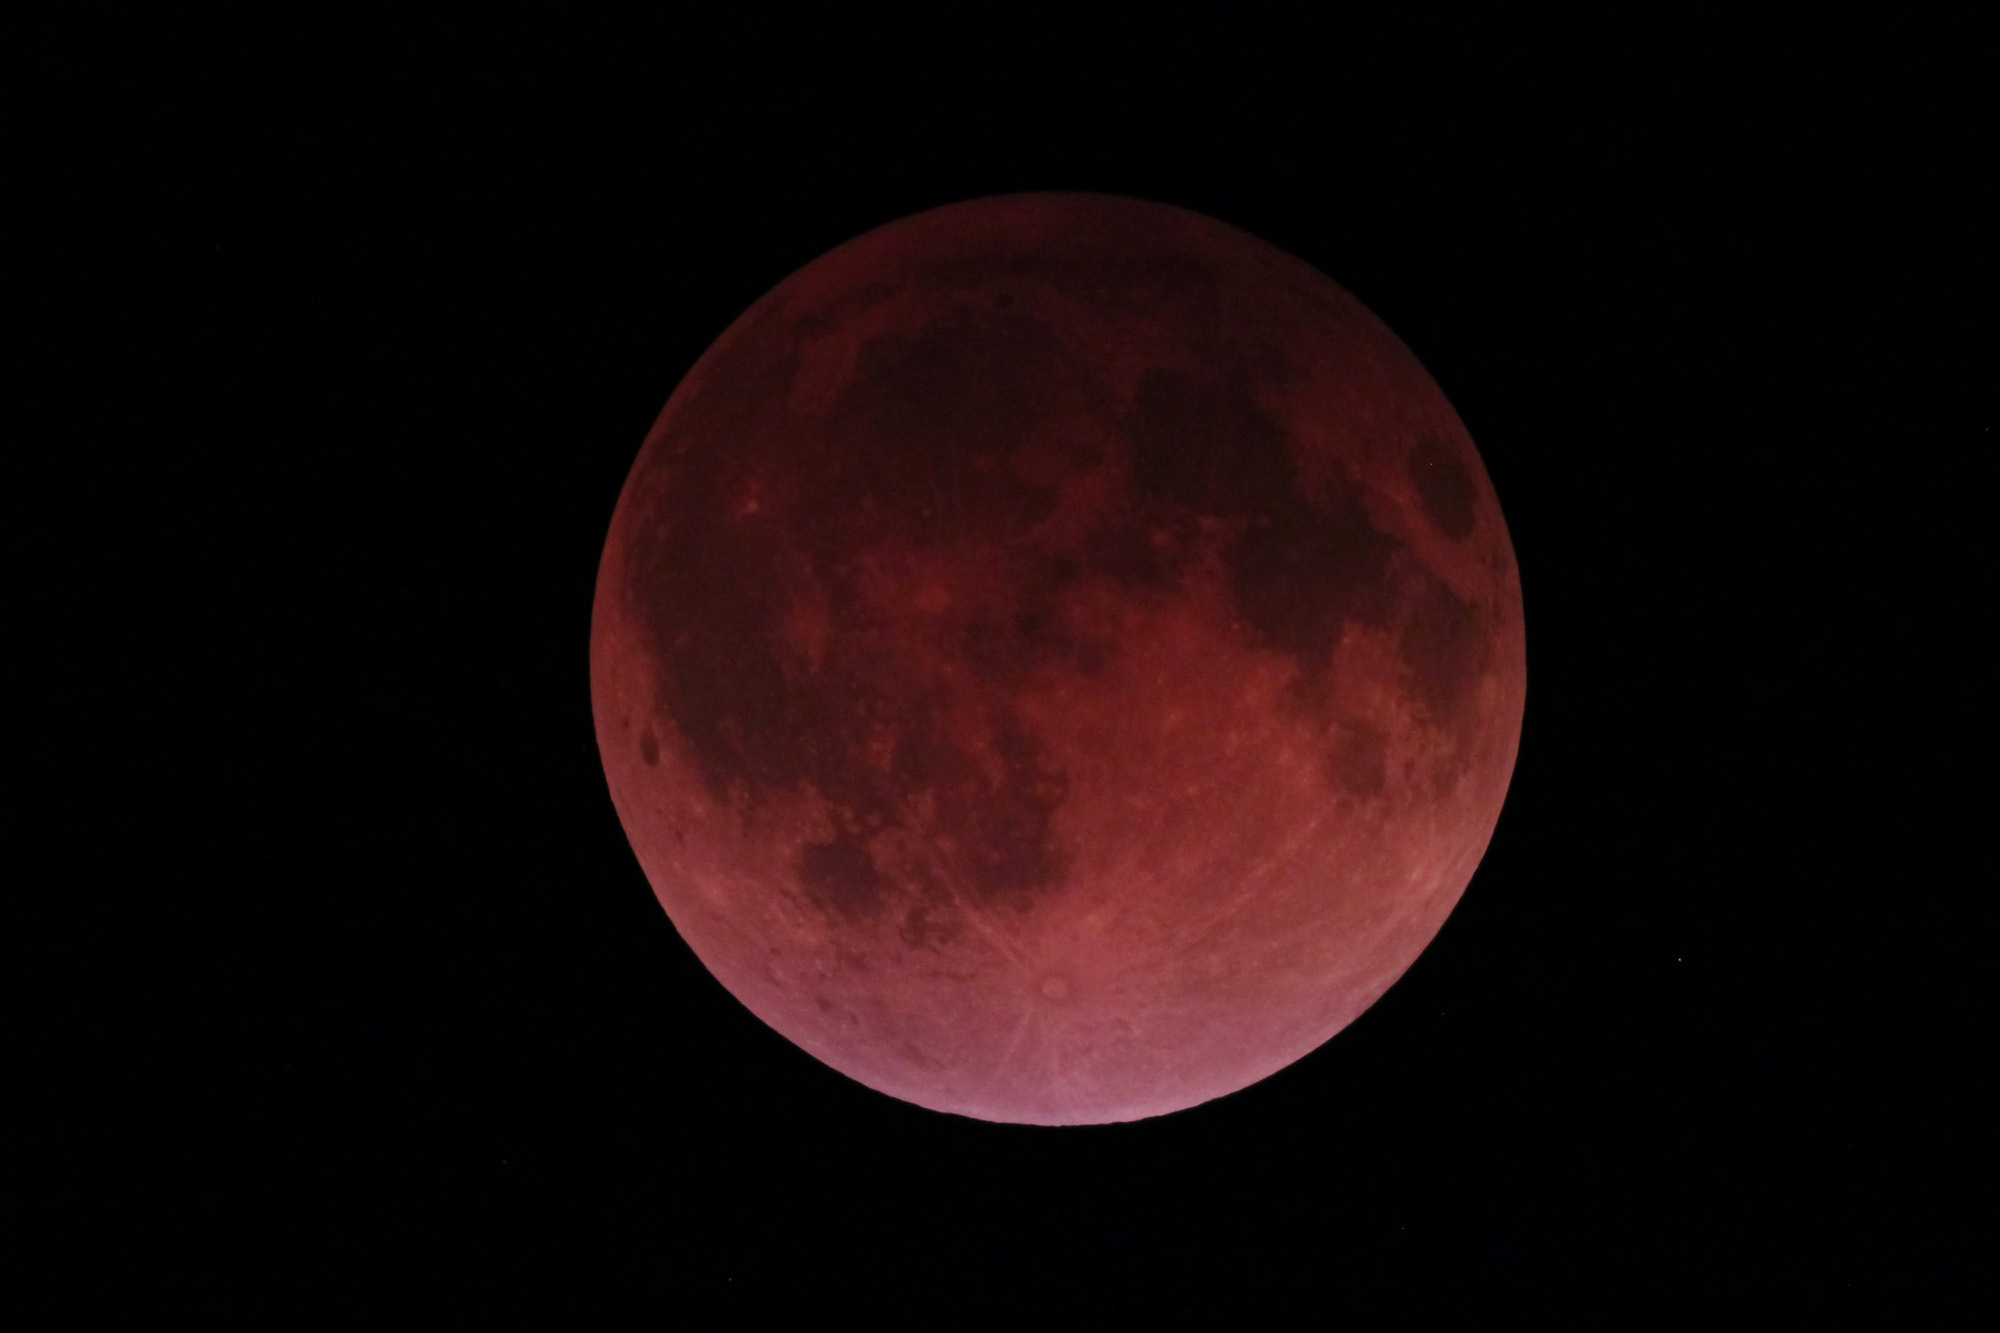 Capturing the Blood Moon: Views from a Lunar Eclipse Photographer (Op-Ed)